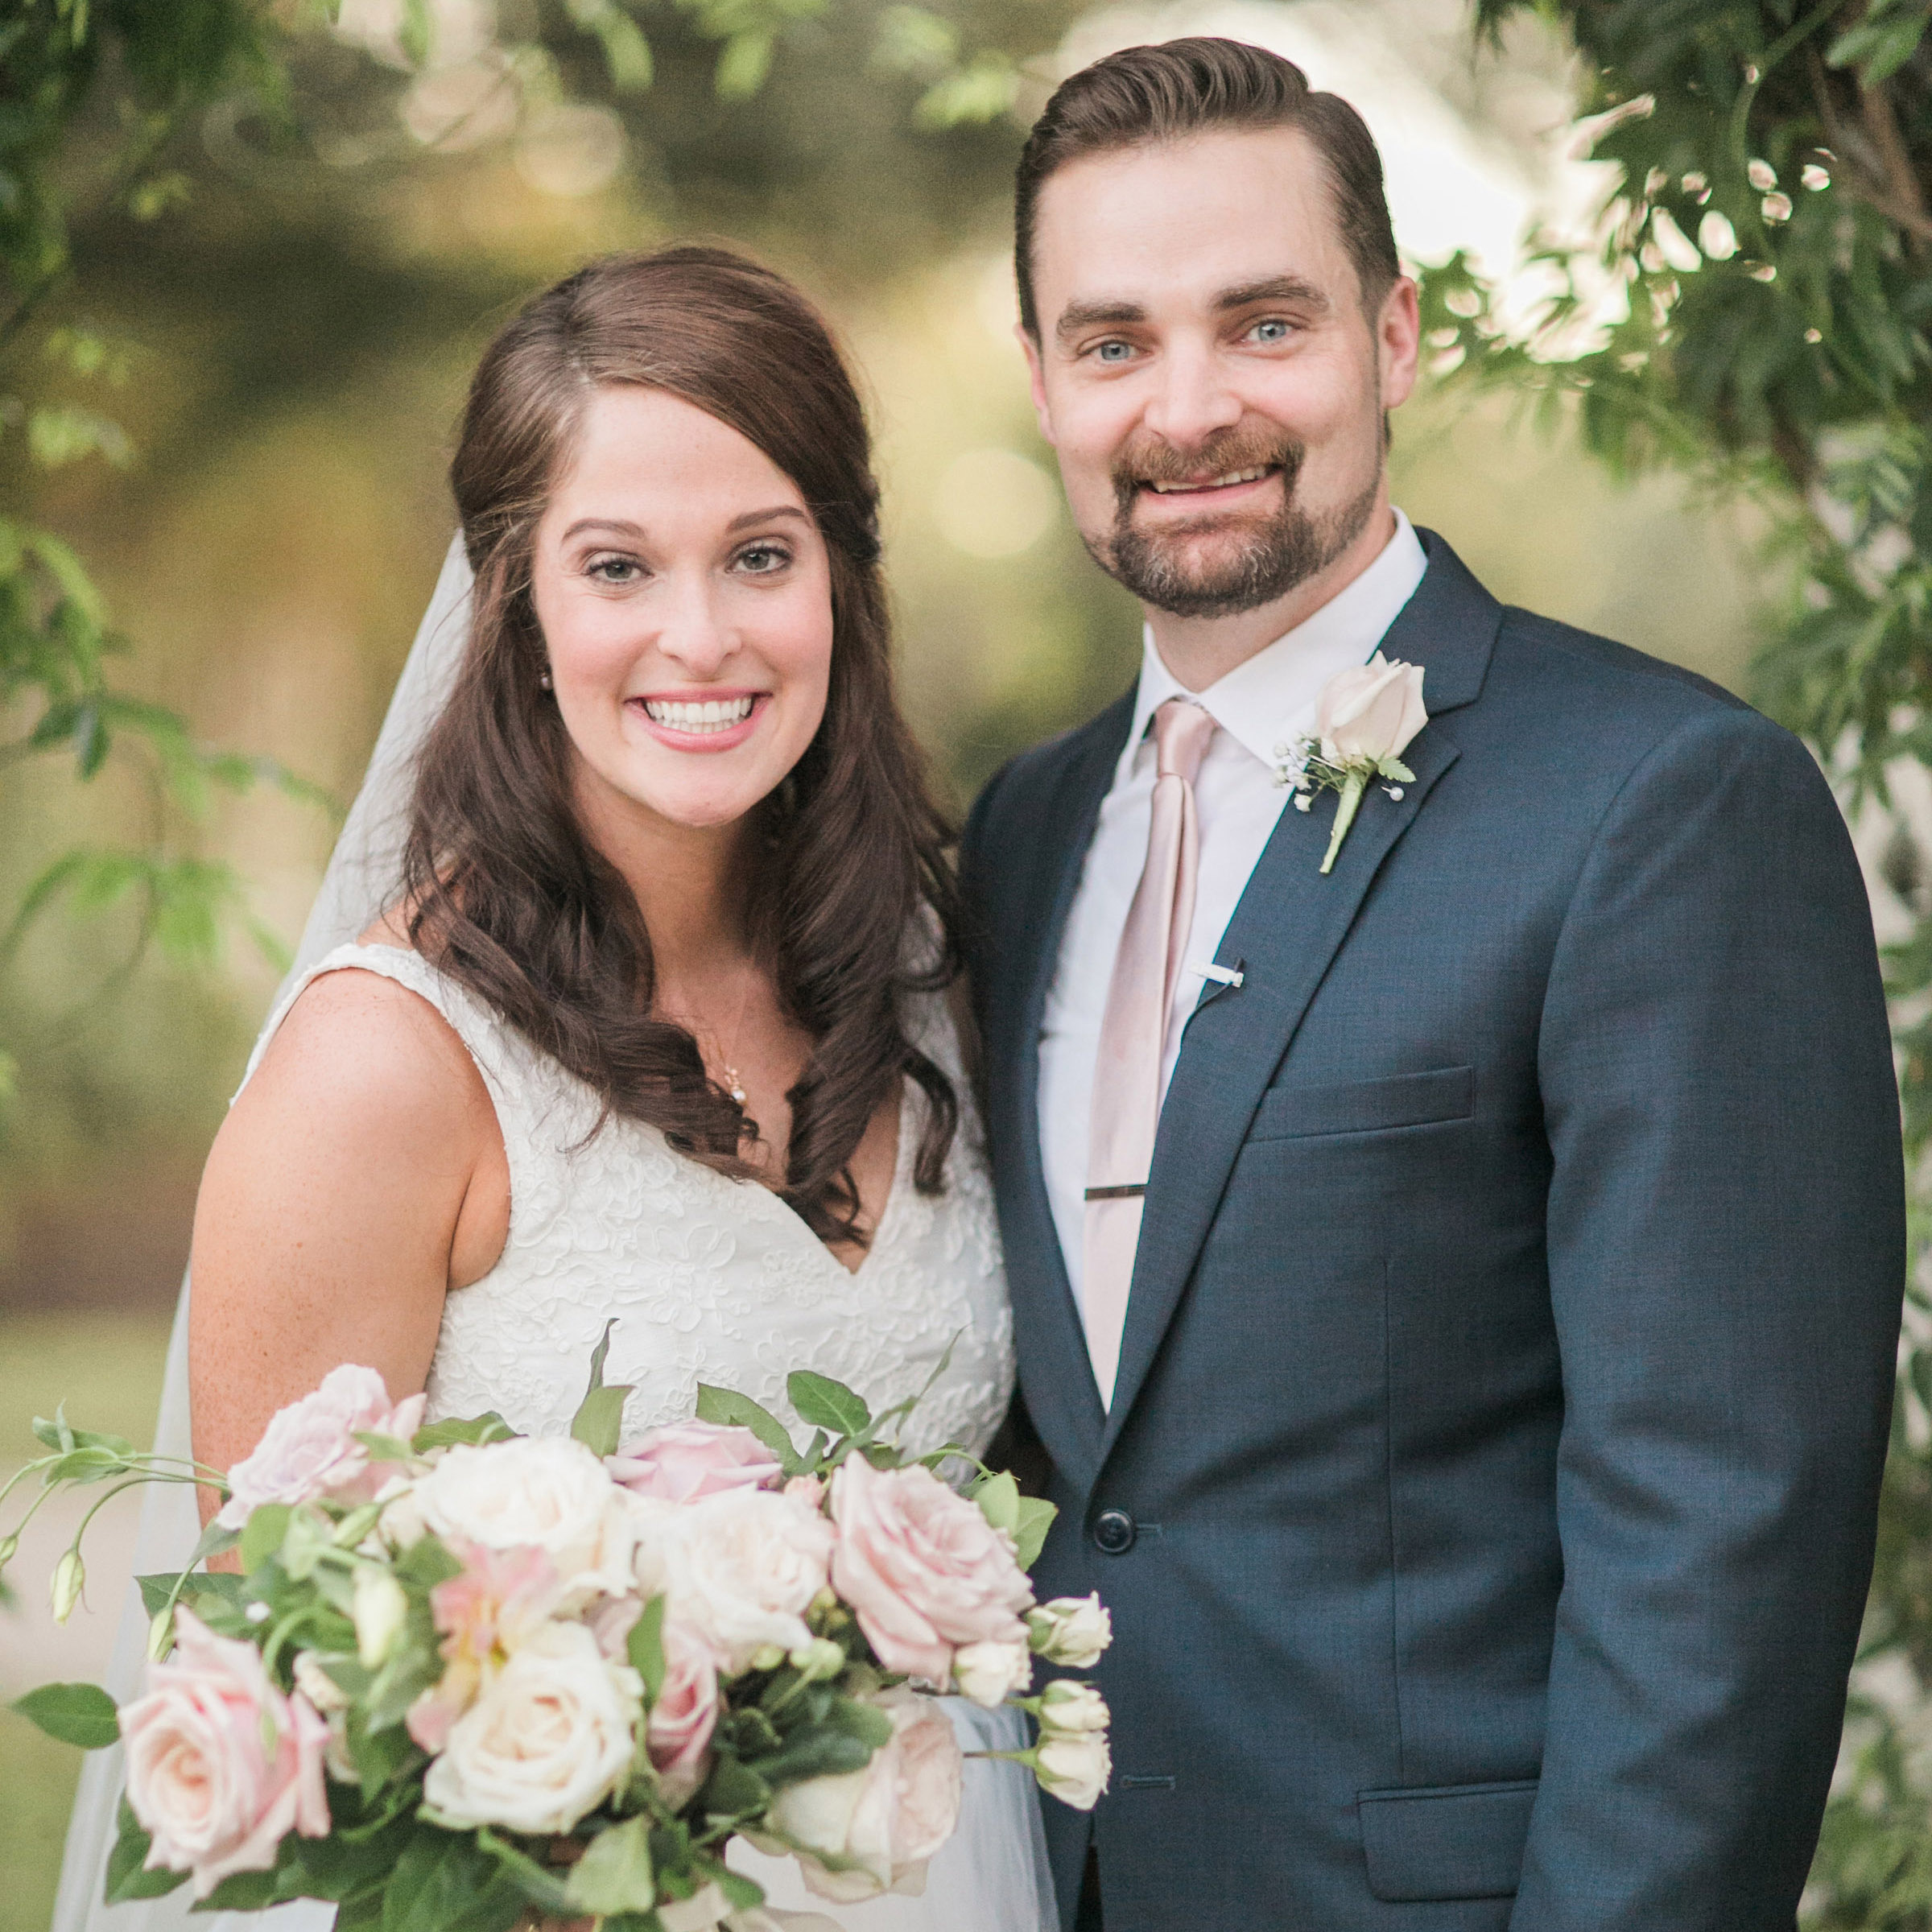 Ashelynn Manor Wedding: Cammile and Rad